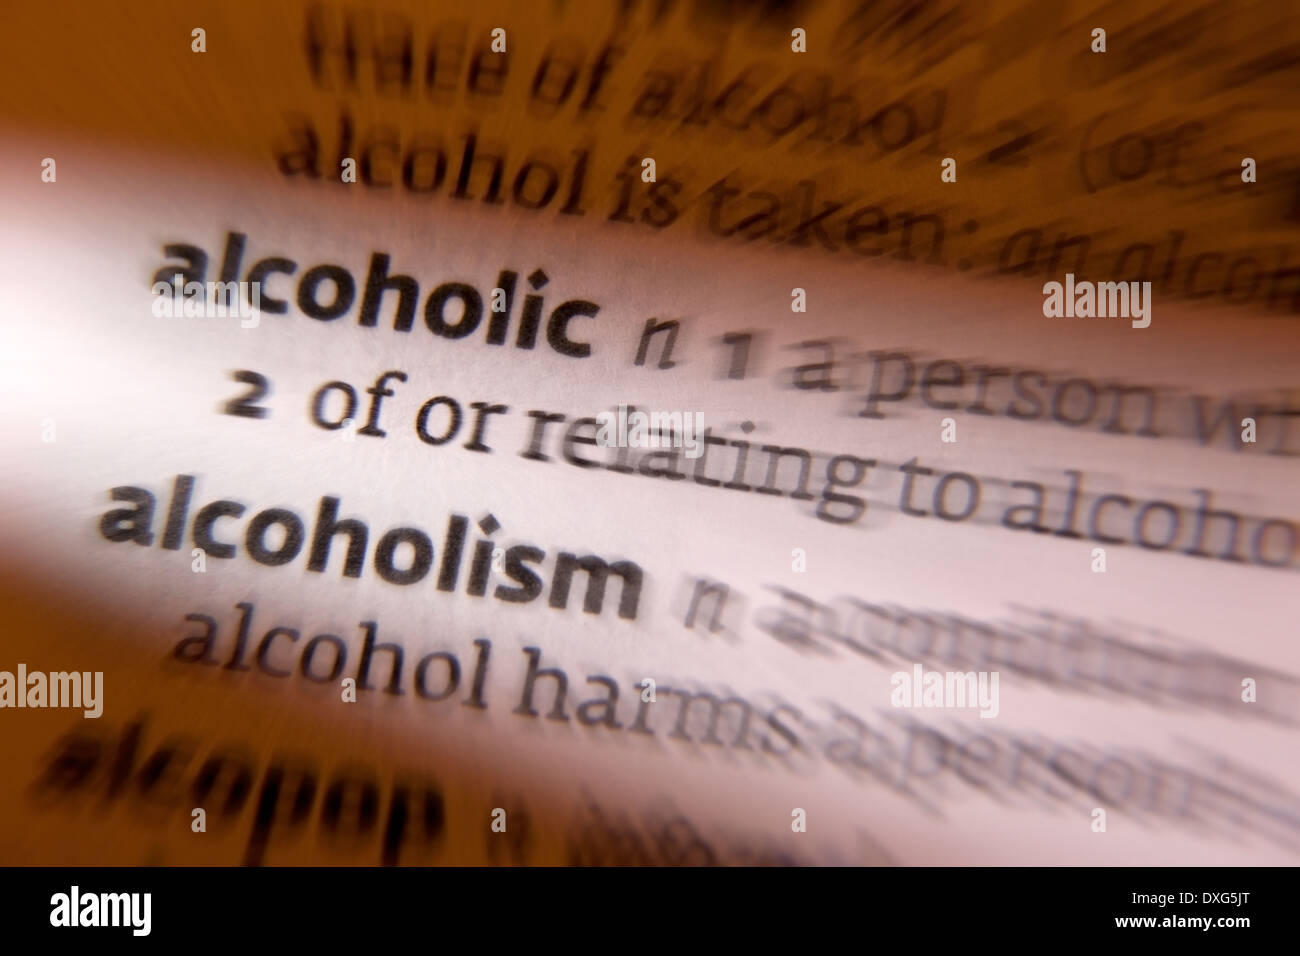 alcoholic alcoholism dictionary definition word alcohol abuse drunk